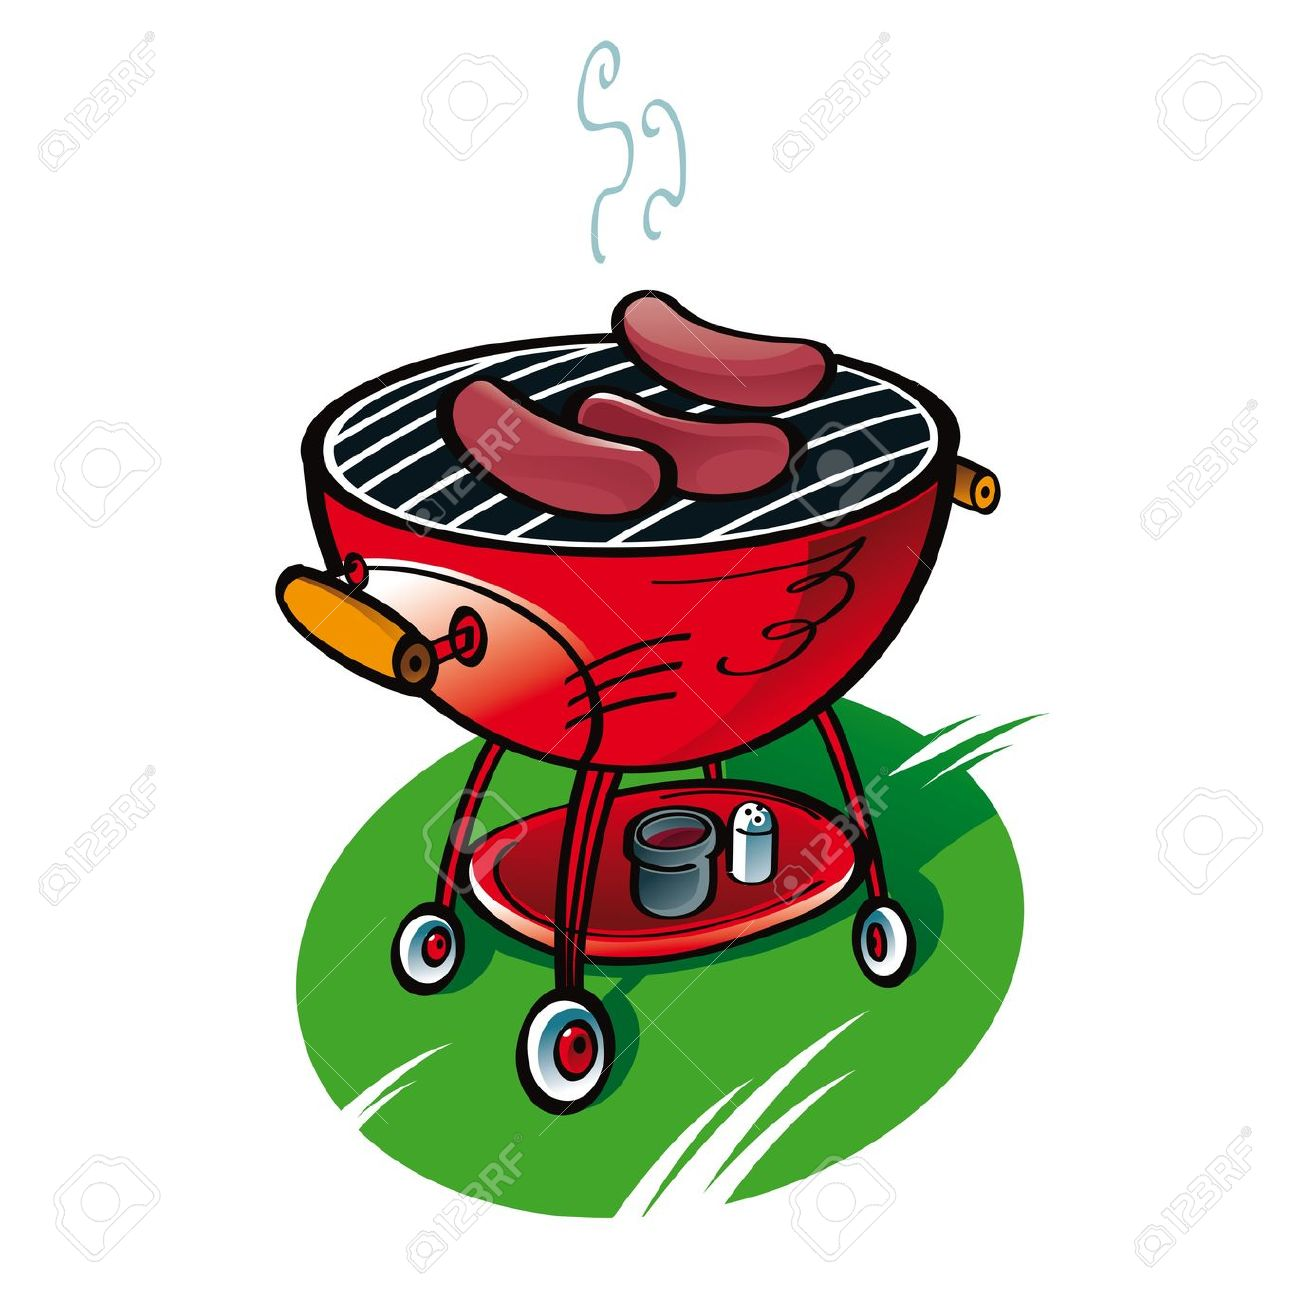 Barbecue With Sausages On The Lawn Party Food Royalty Free.